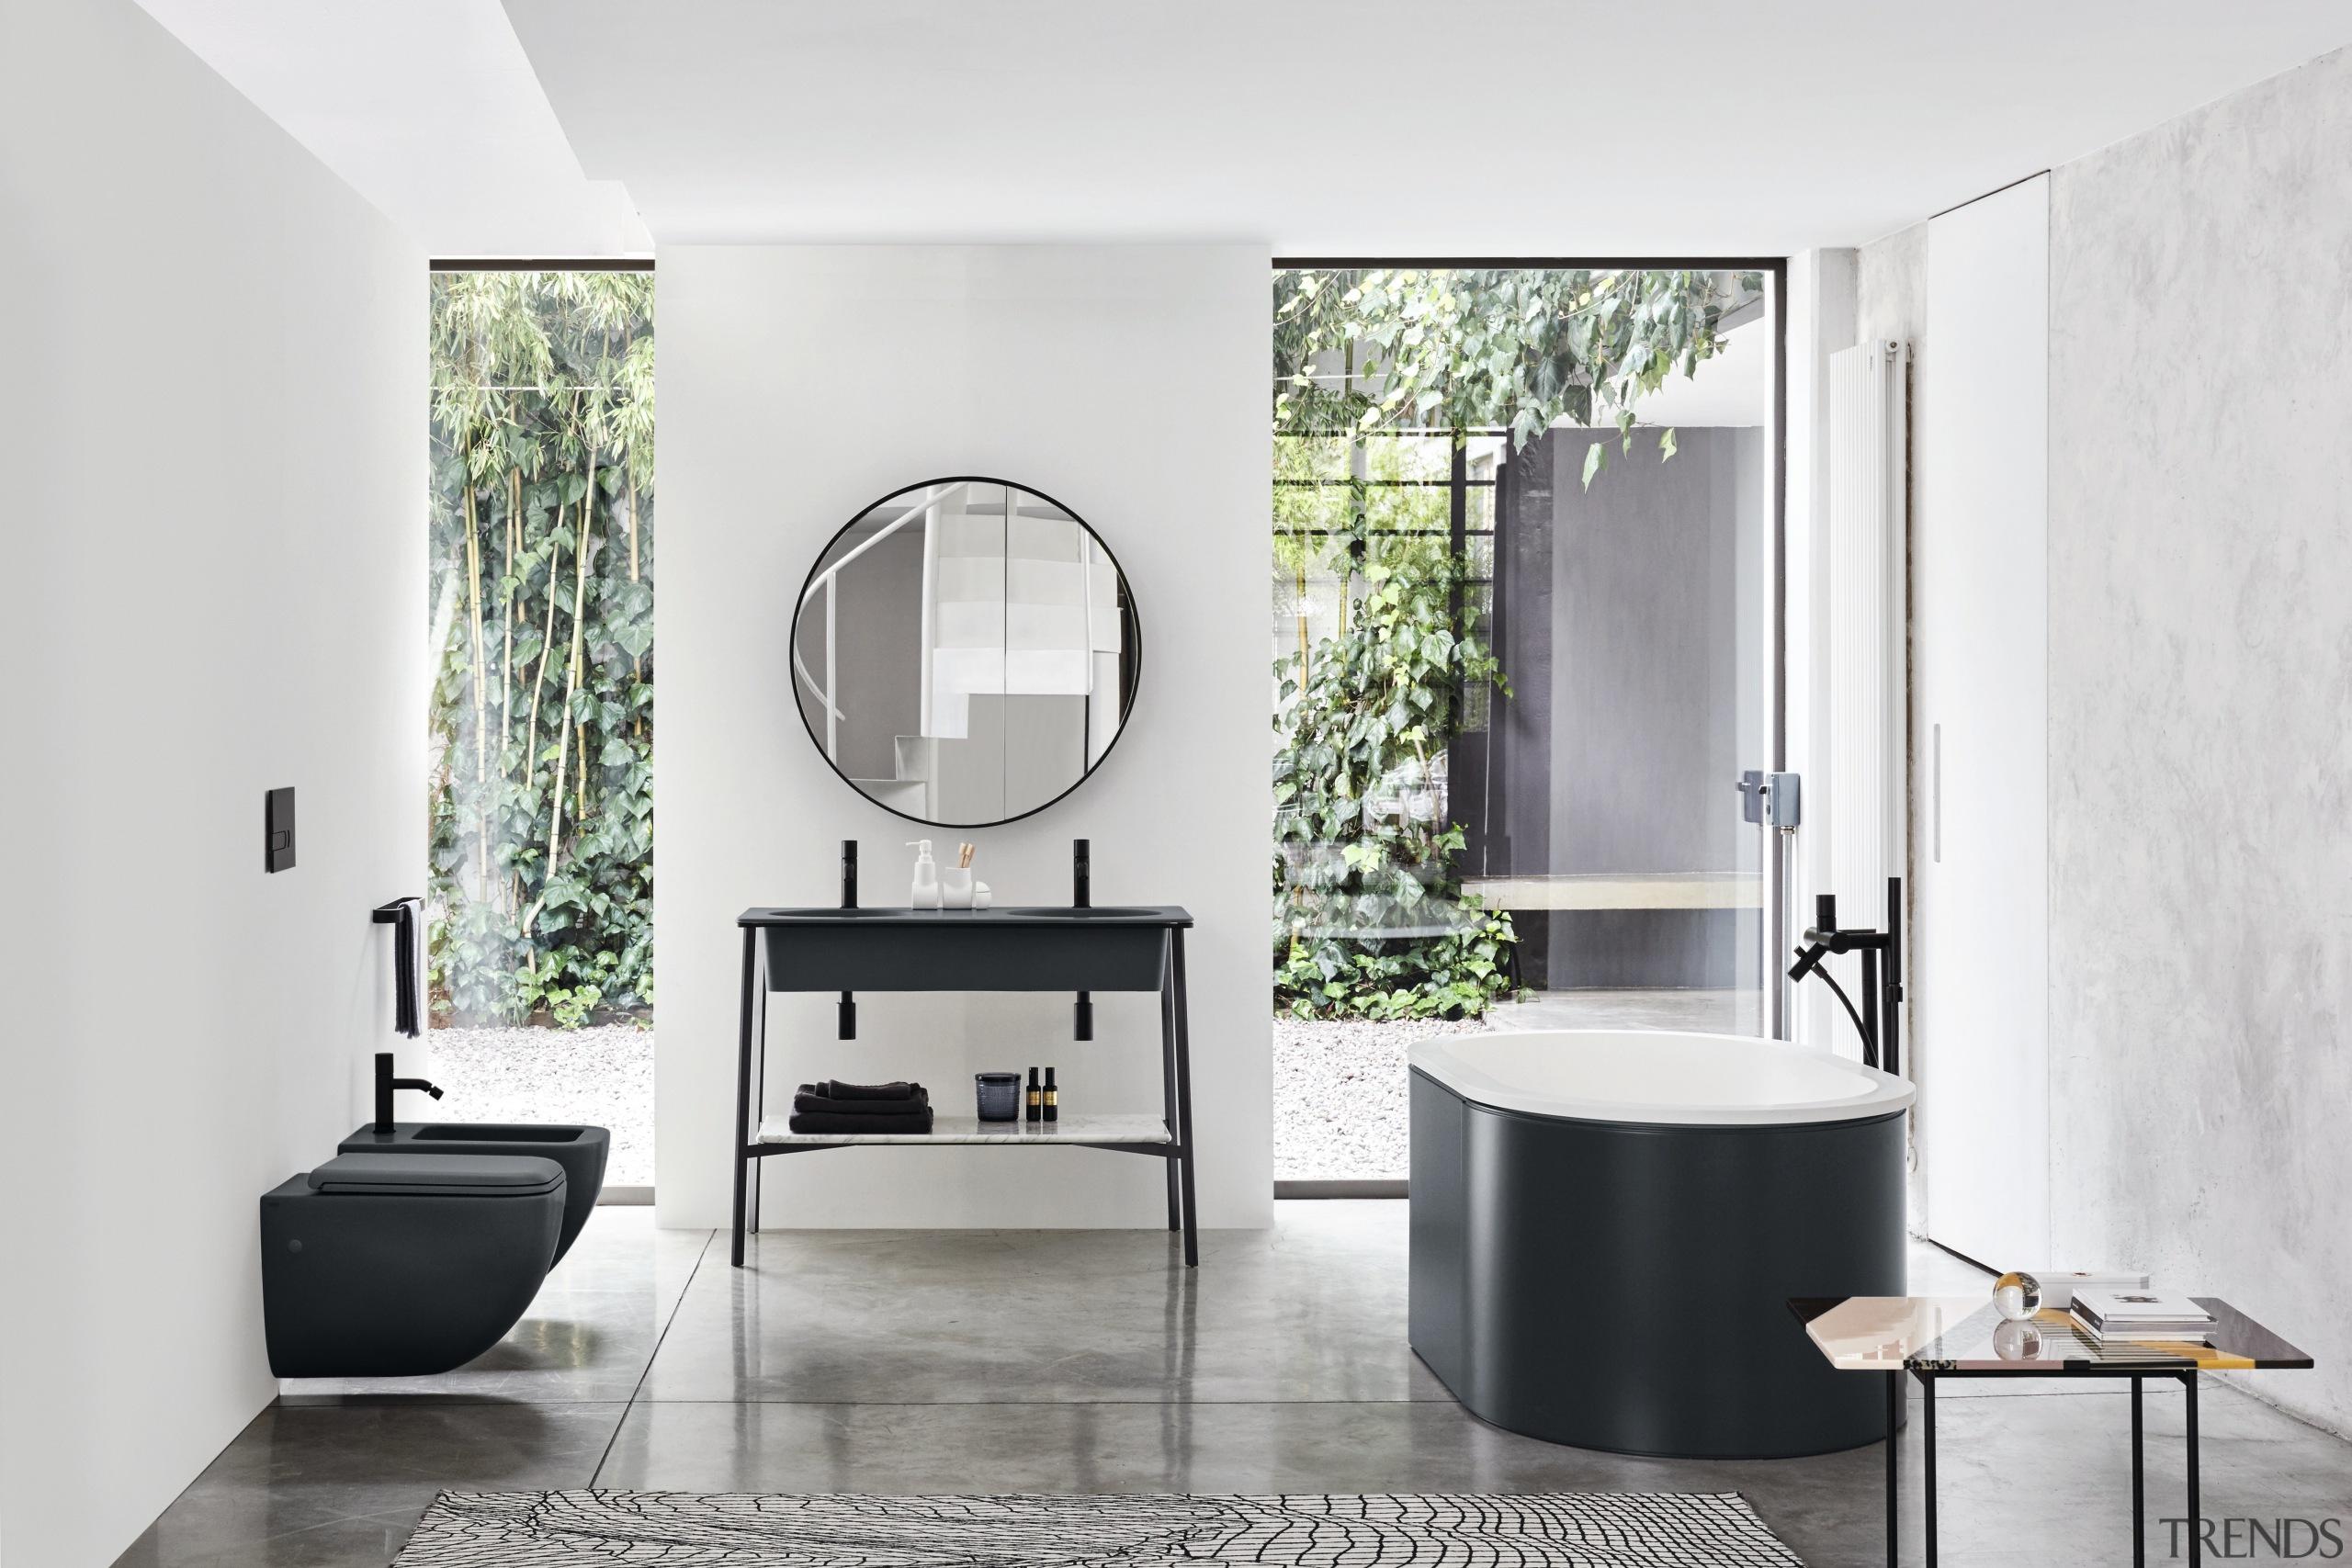 The Catini collection by Ceramica Cielo includes the bathroom, bathroom accessory, bathroom cabinet, floor, interior design, plumbing fixture, product design, sink, tap, white